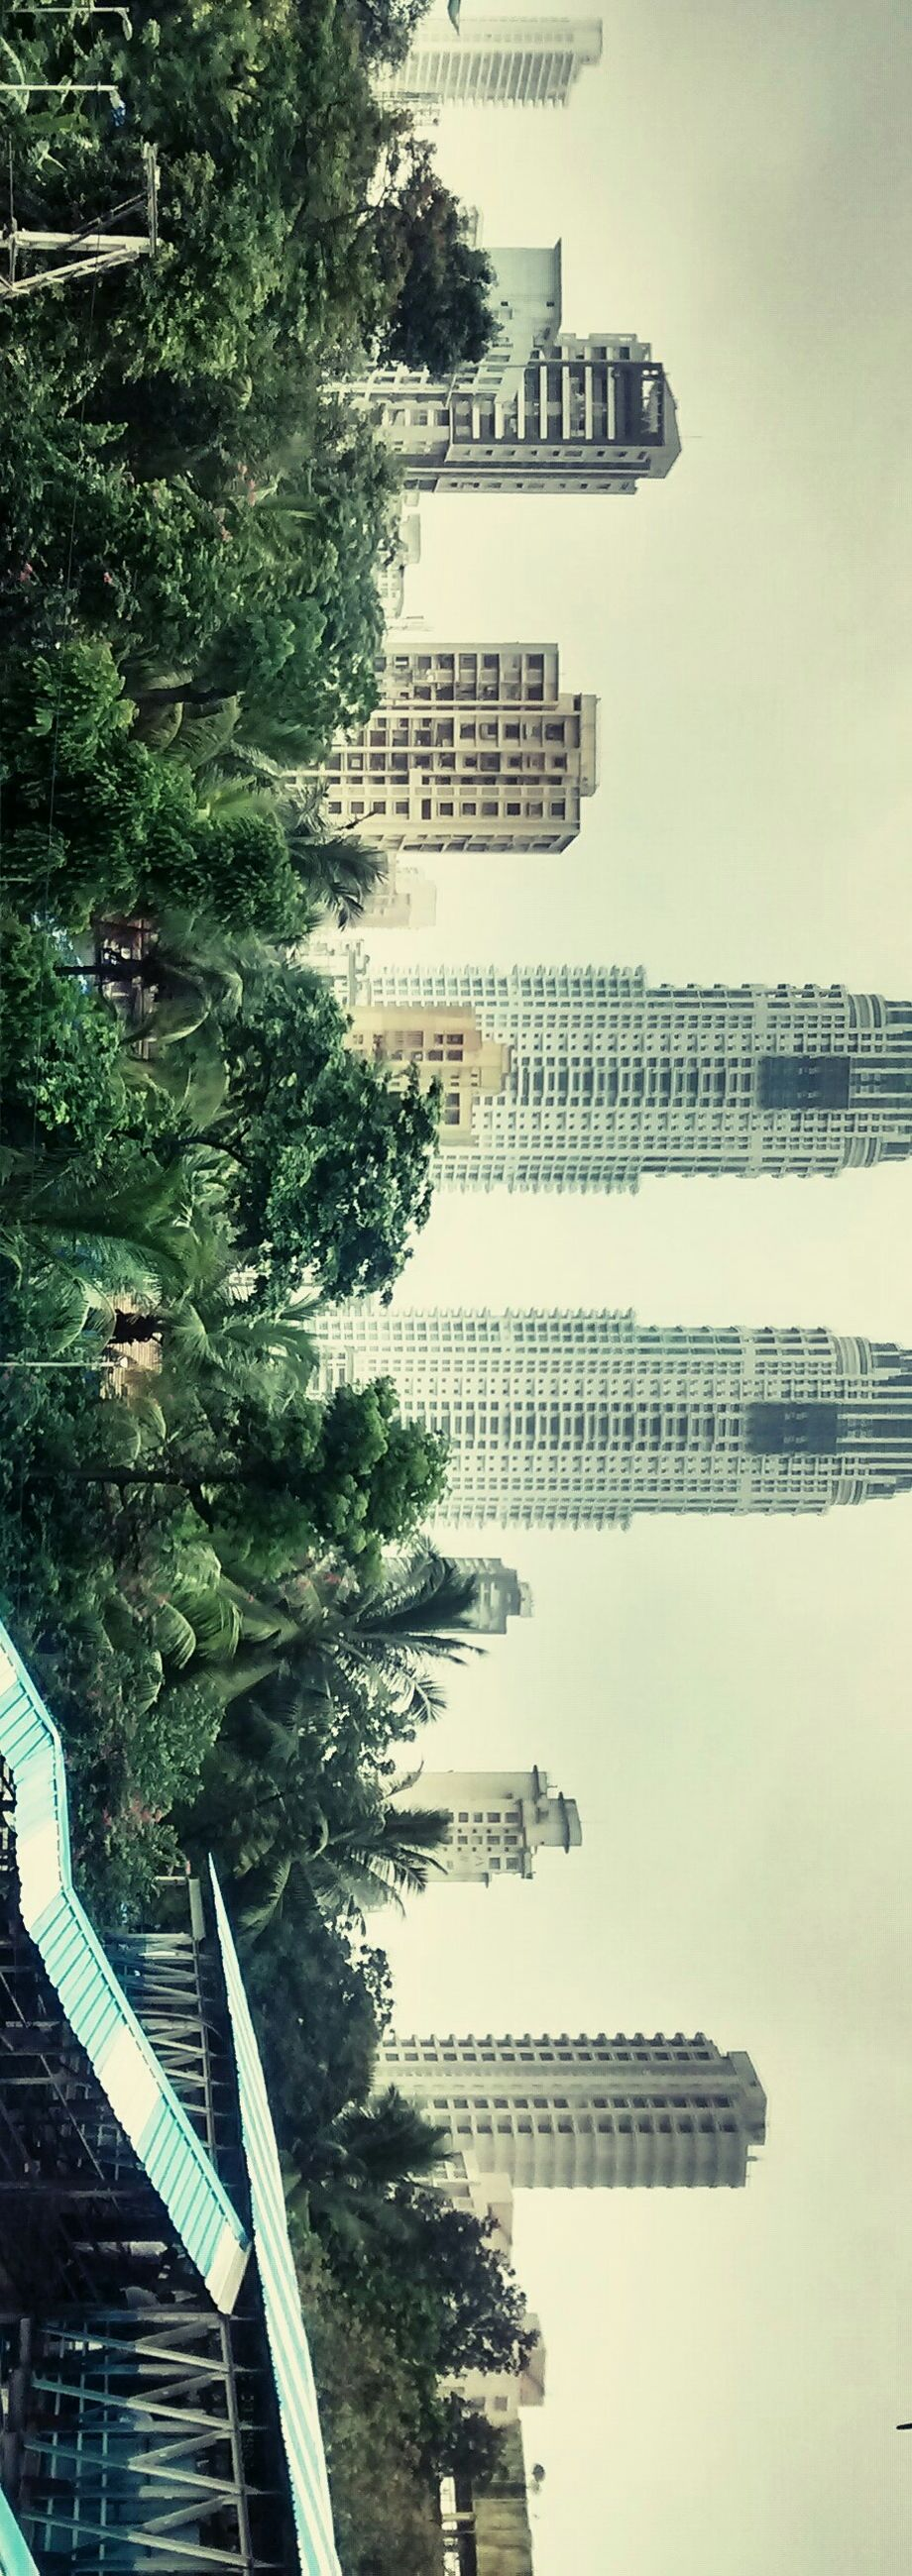 architecture, building exterior, built structure, city, skyscraper, tree, modern, tall - high, water, tower, office building, building, growth, day, outdoors, river, high angle view, sky, no people, clear sky